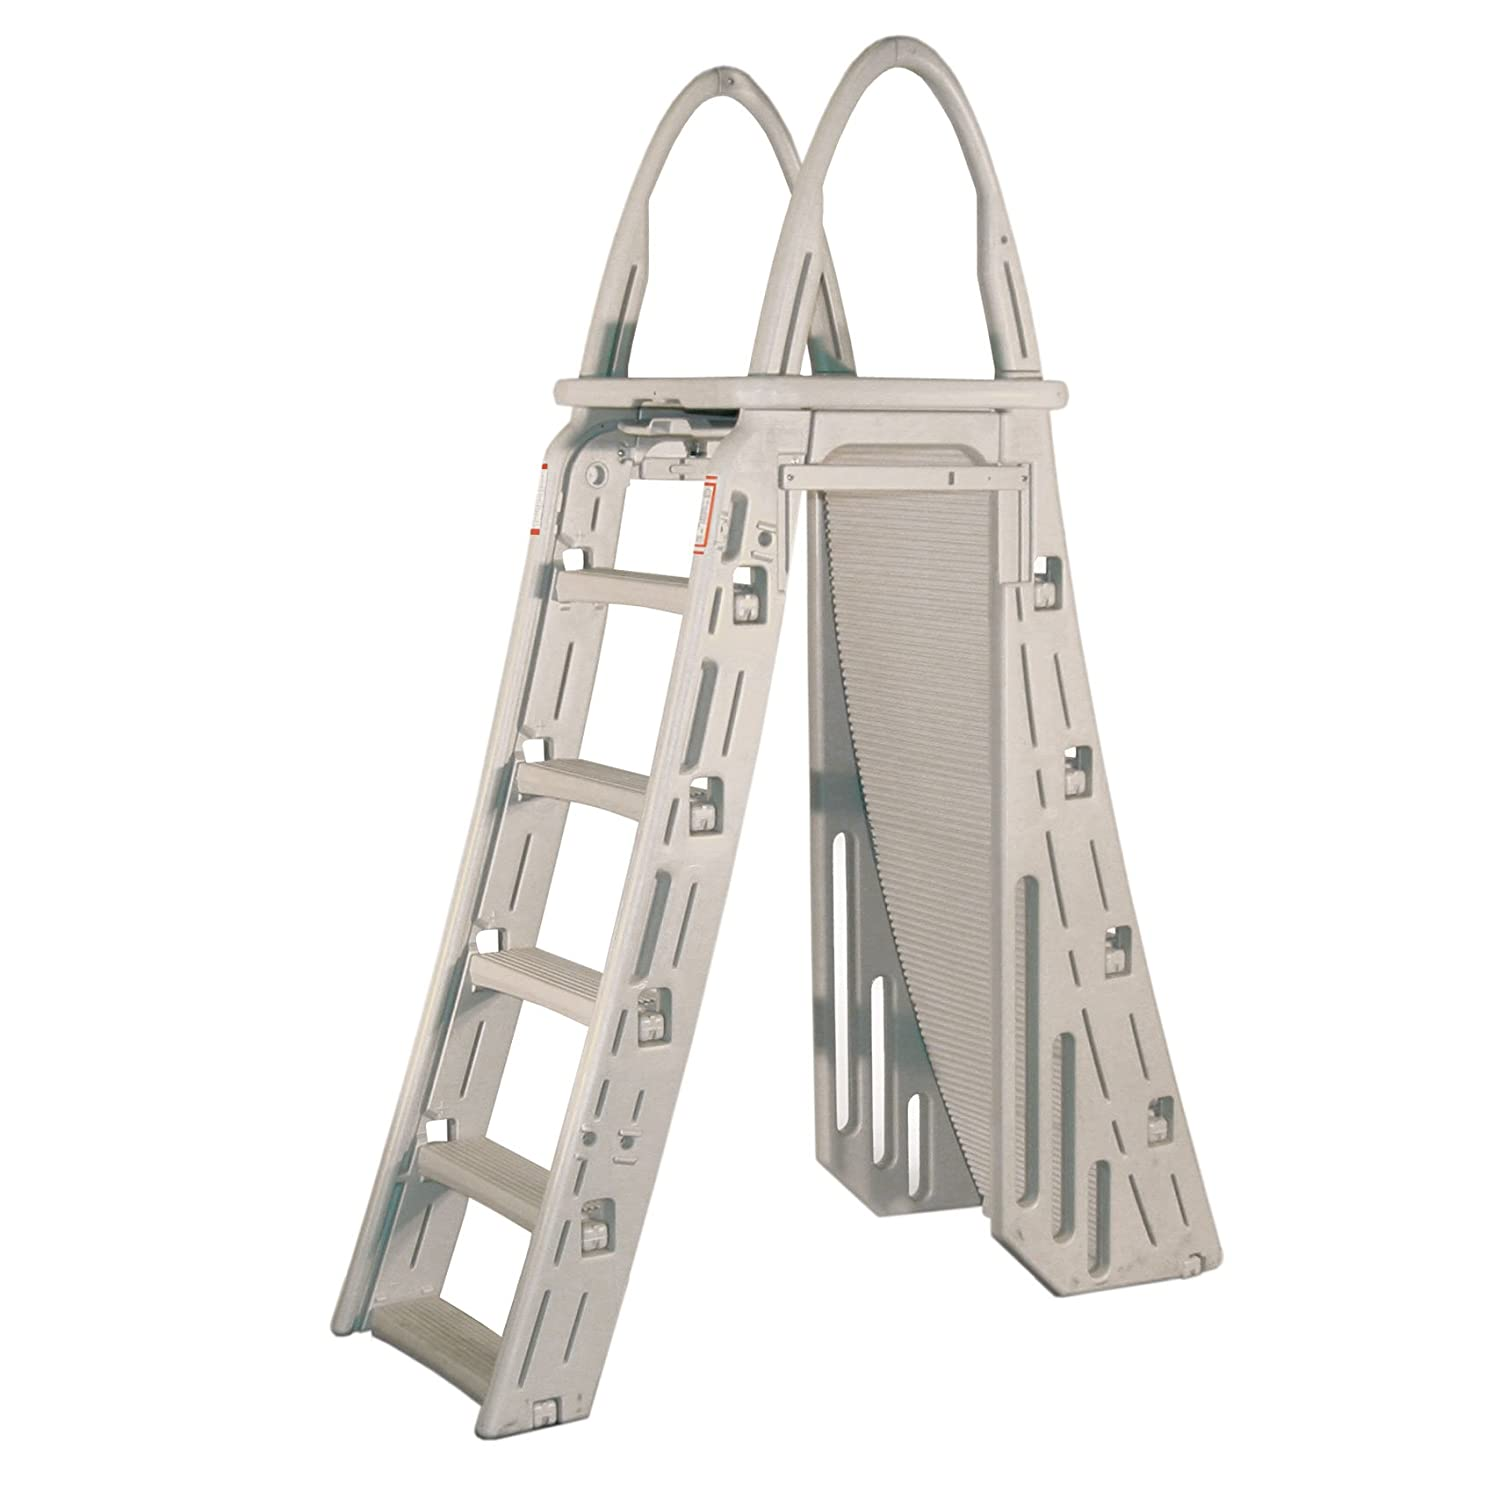 Above Ground Pool Ladders-Confer Plastics A-frame 7200 Above ground Adjustable pool Roll guard Safety Ladder